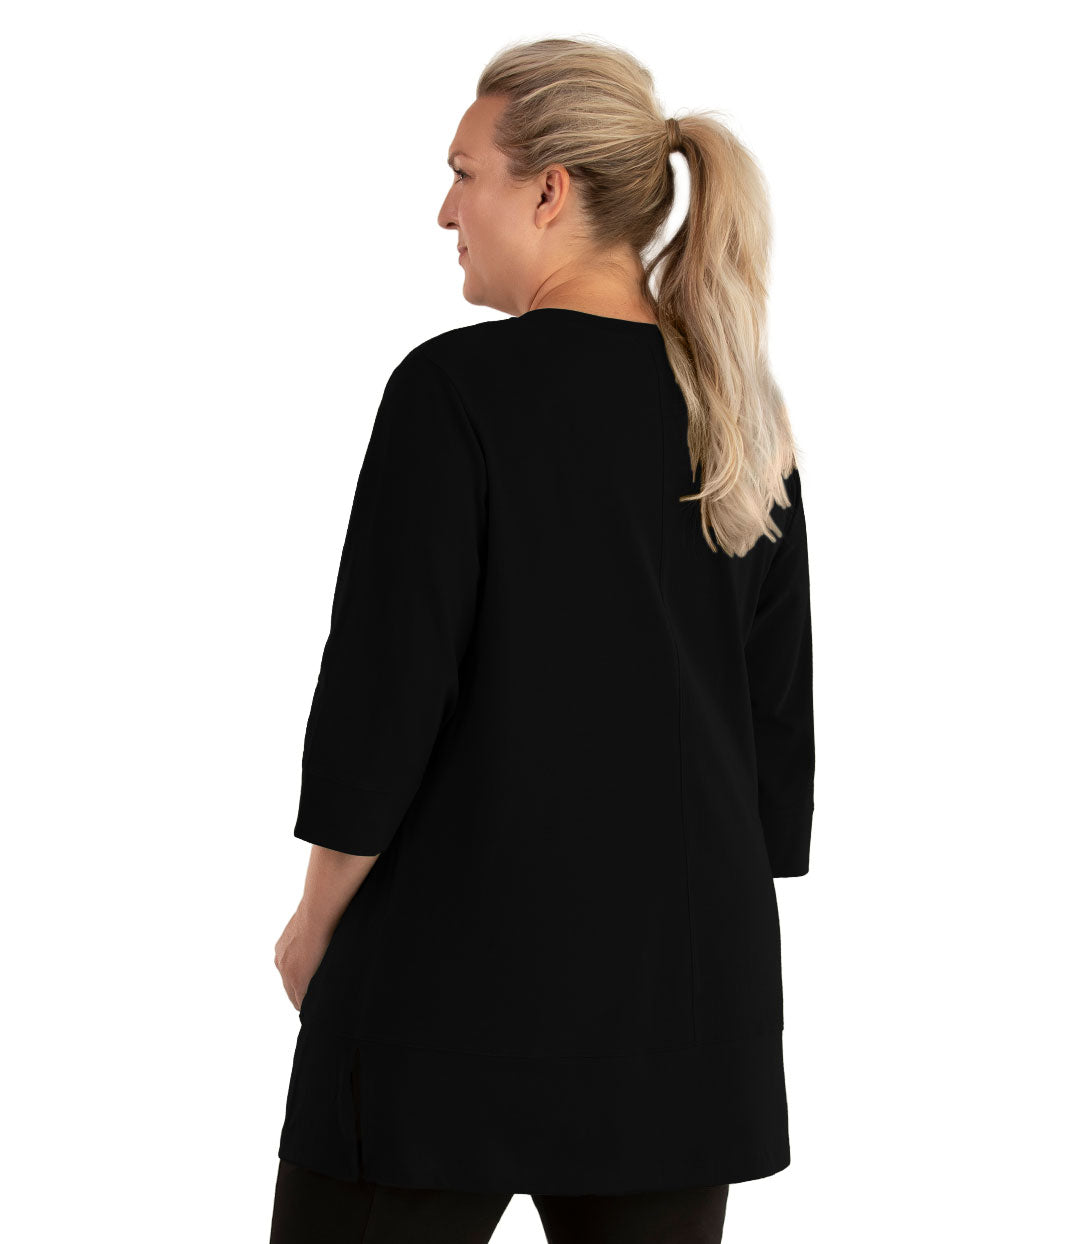 Stretch Naturals Princess V-neck Tunic Basic Colors-Tops 3/4 Sleeve Tunic-Hop Wo Trading Co Ltd-XL-Black-JunoActive